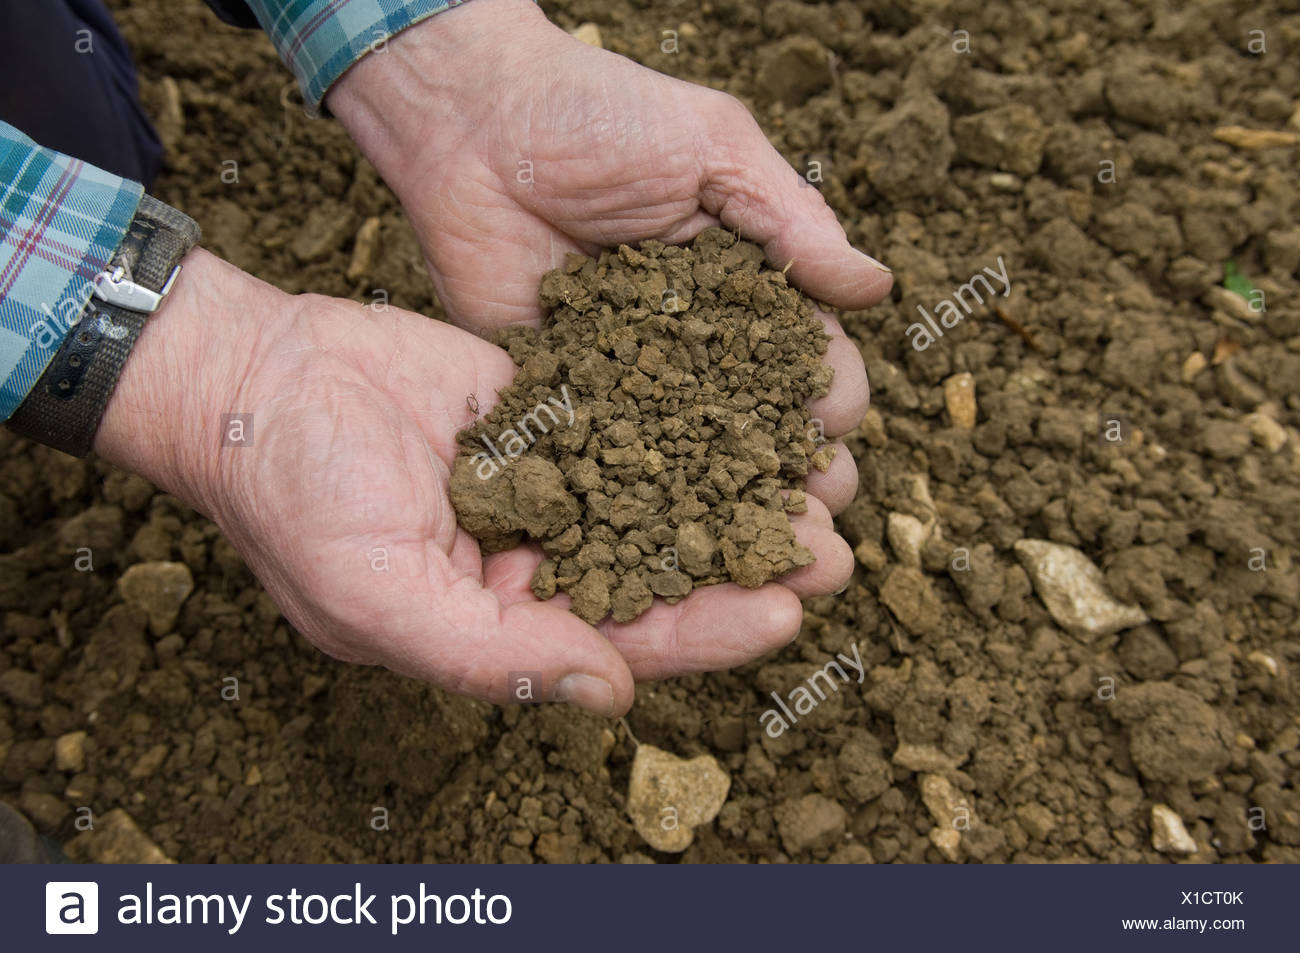 Man cupping dirt with his hands - Stock Image